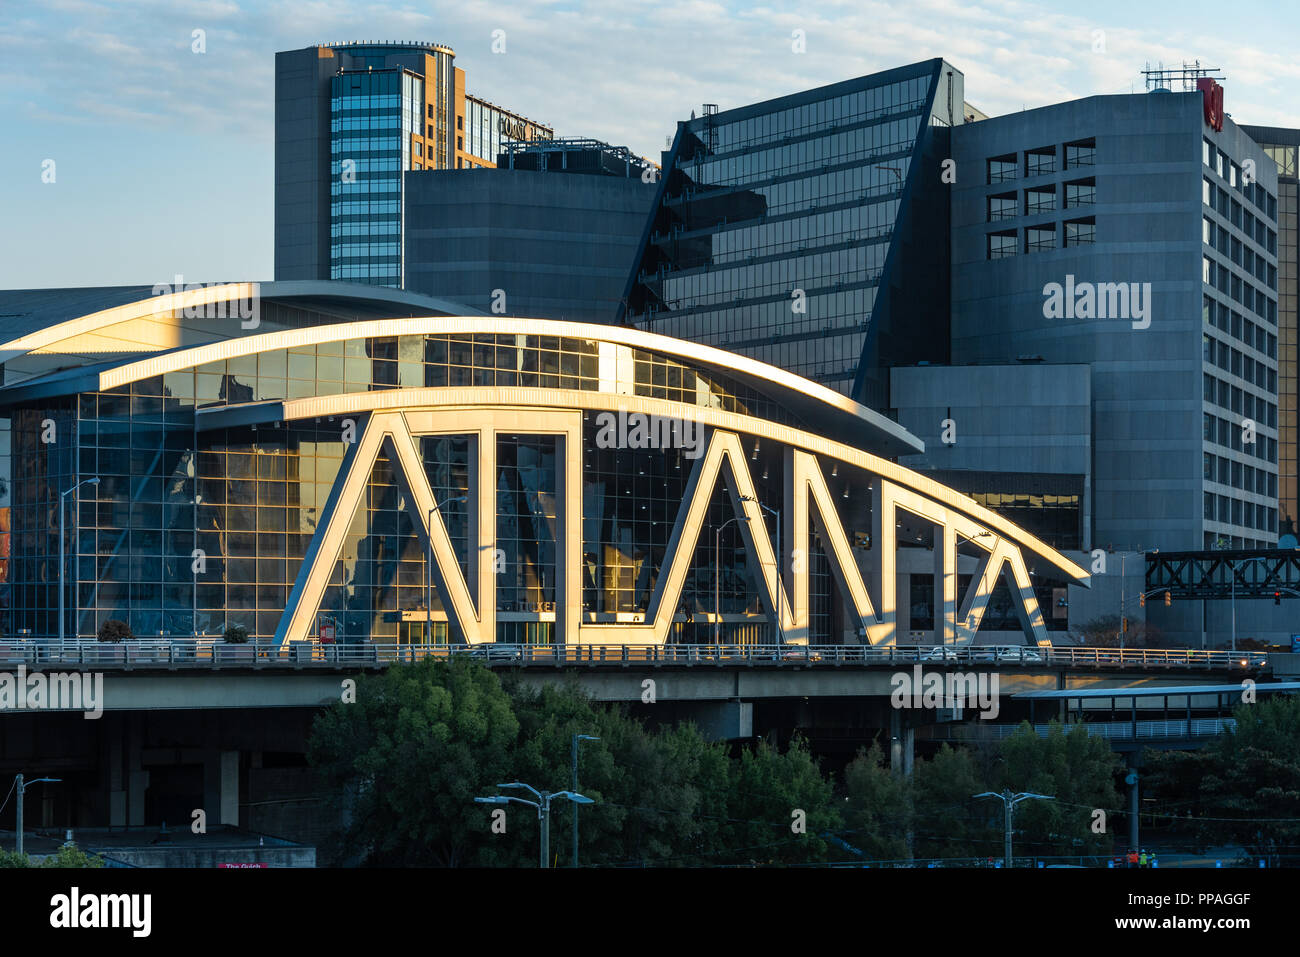 Atlanta Georgia's State Farm Arena, with its iconic typographic architecture, appears spotlit by the rising sun at sunrise. (USA) - Stock Image